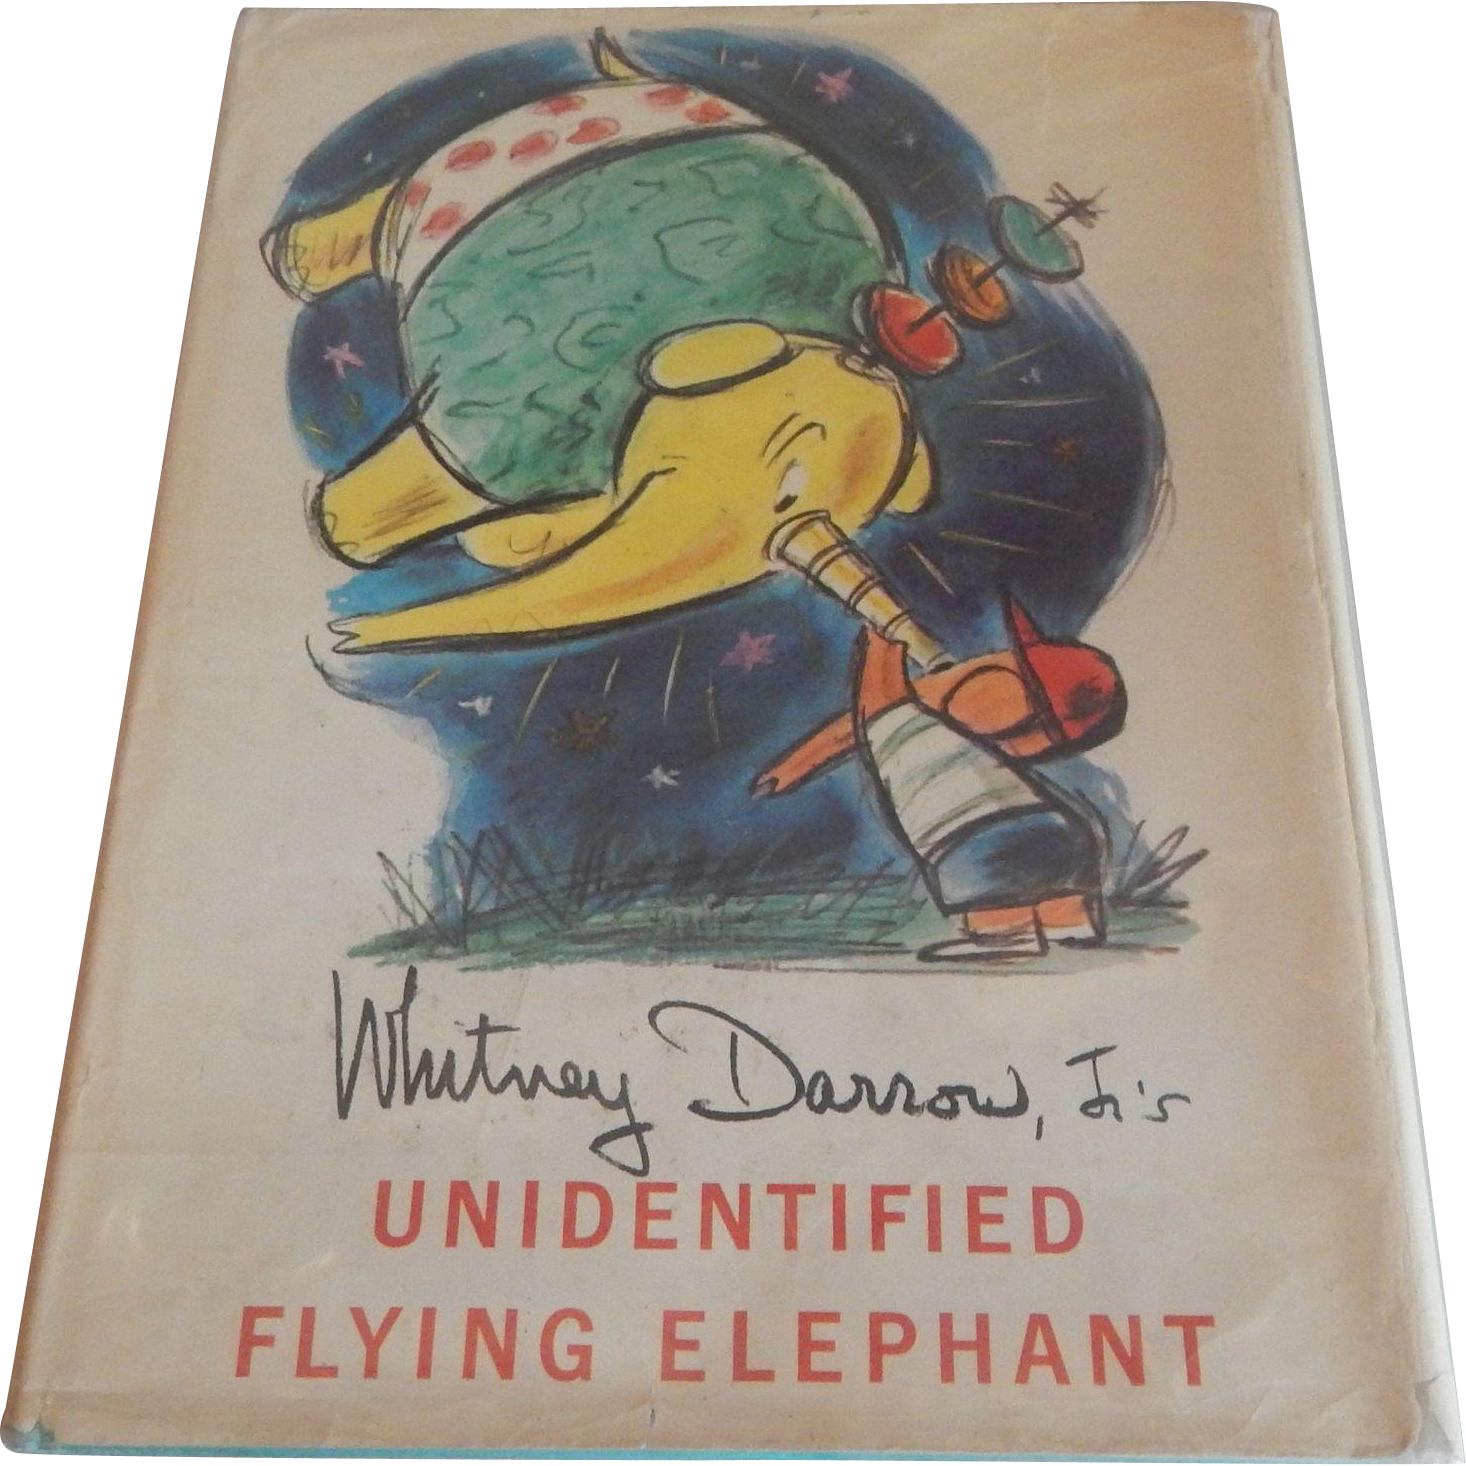 Whitney Darrow, Jr's Unidentified Flying Elephant